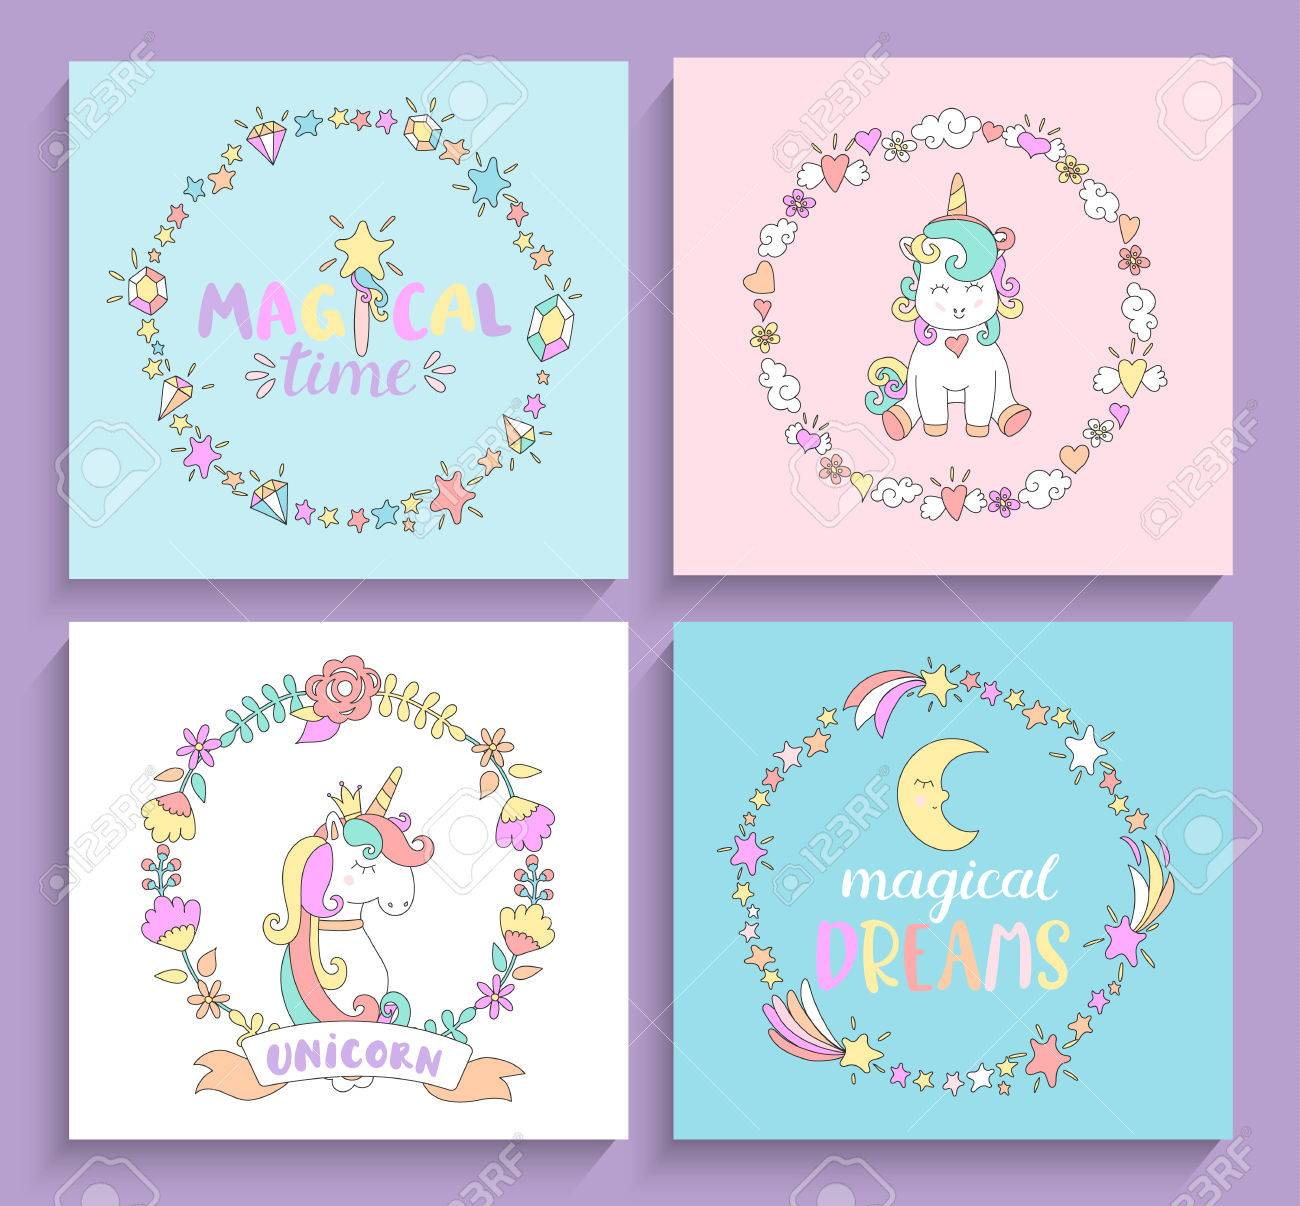 Set of magical unicorns cards with circle frames and lettering set of magical unicorns cards with circle frames and lettering vector illustration for print and m4hsunfo